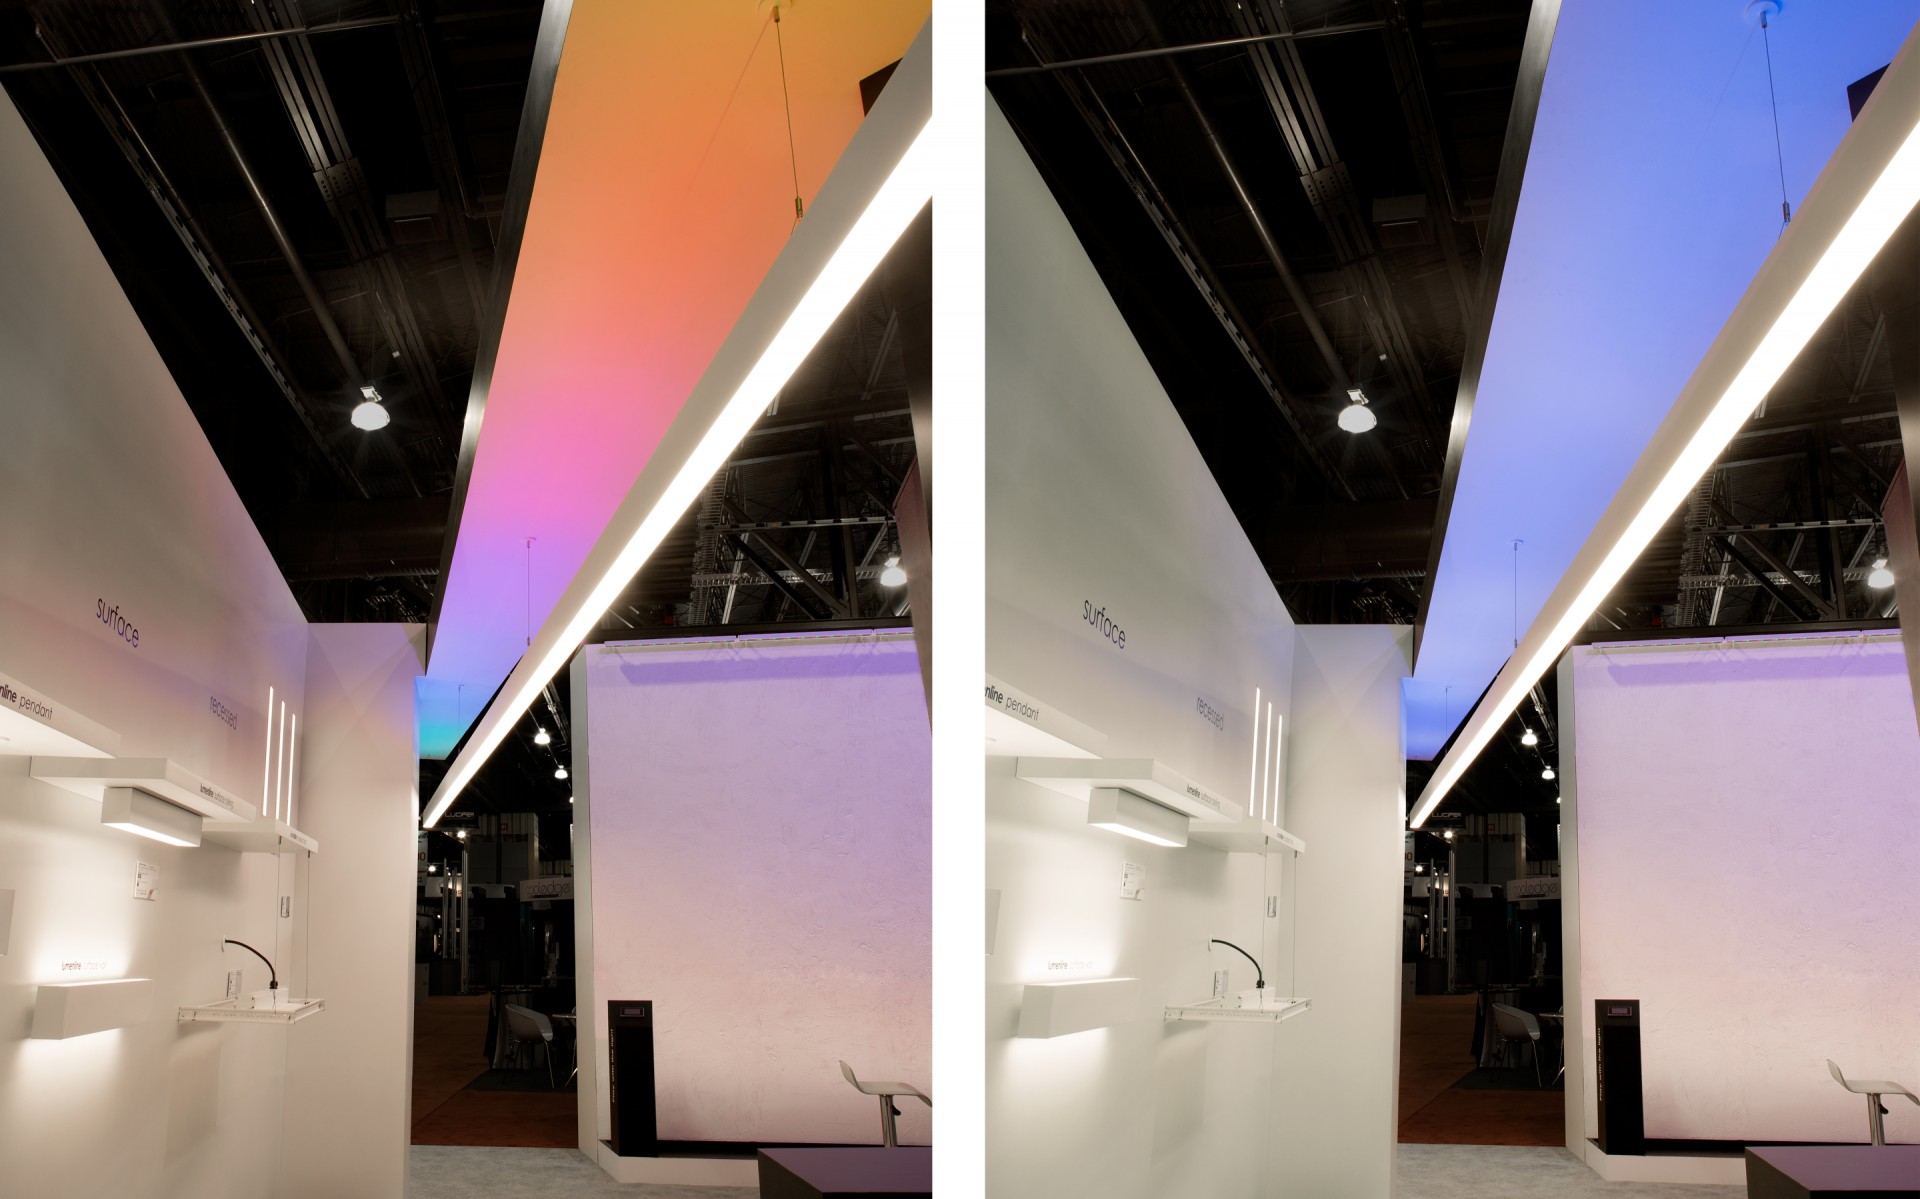 Left: The Lumenline wall. Overhead: Lumenline Pendant Direct/Indirect, with color-changing indirect light and 3500K downlight. (Lumenpulse booth, Lightfair 2013)